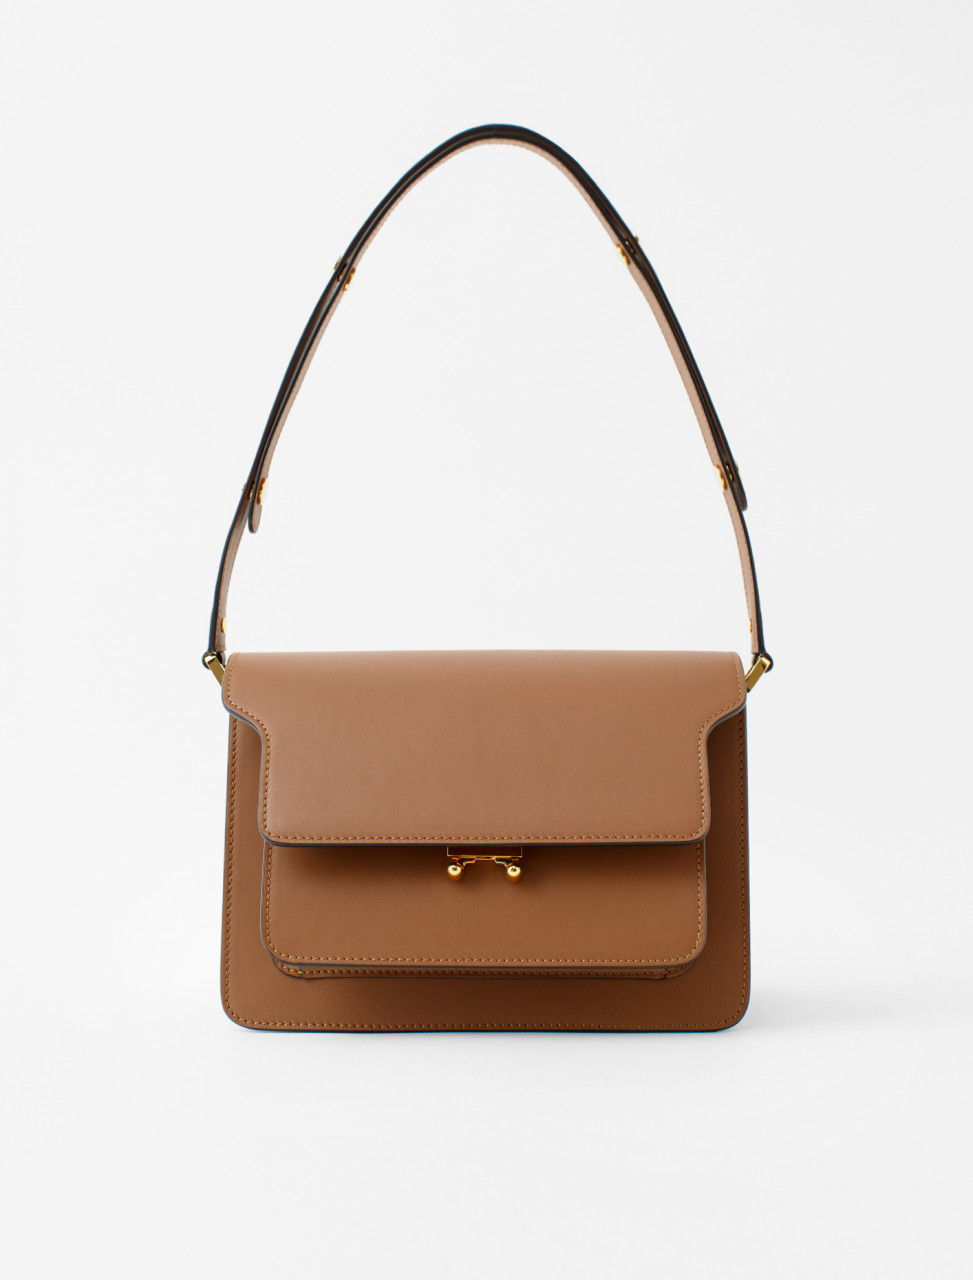 Trunk Shoulder Bag in Gold Brown